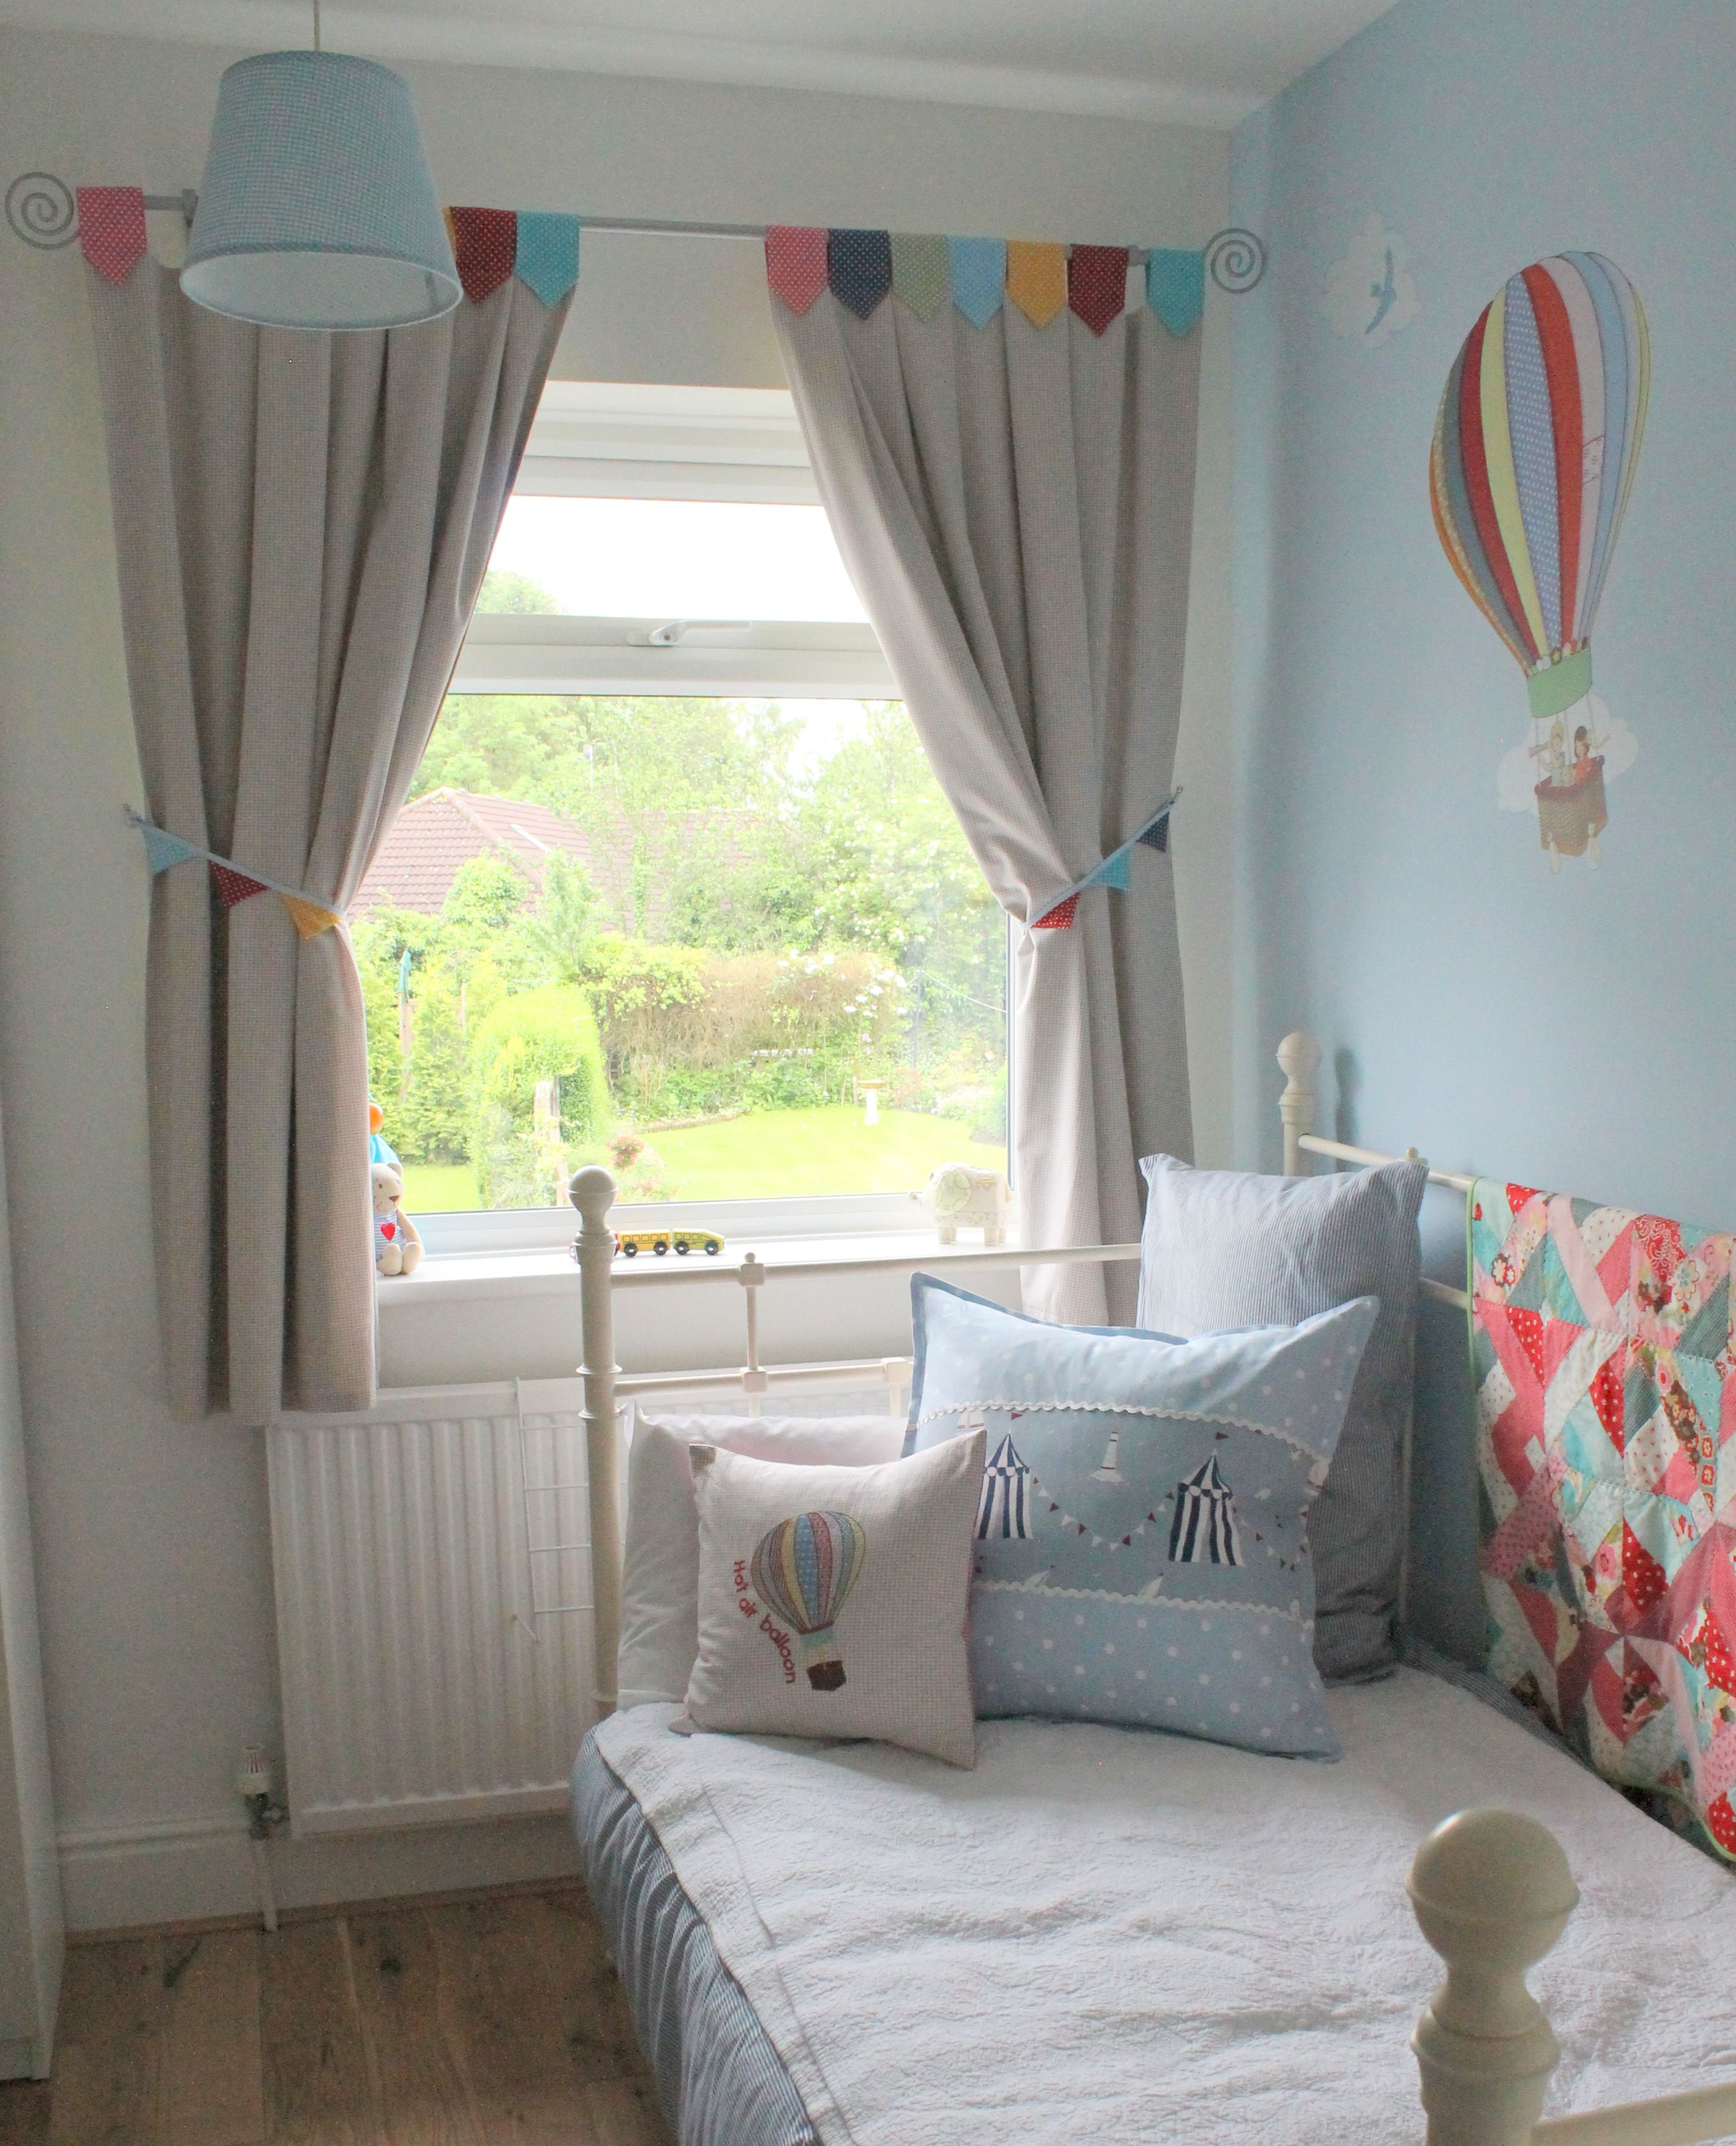 Ho how to tie balloon curtains - Day Bed With Cushions Bunting Curtains And Hot Air Balloon Stickers From Belle